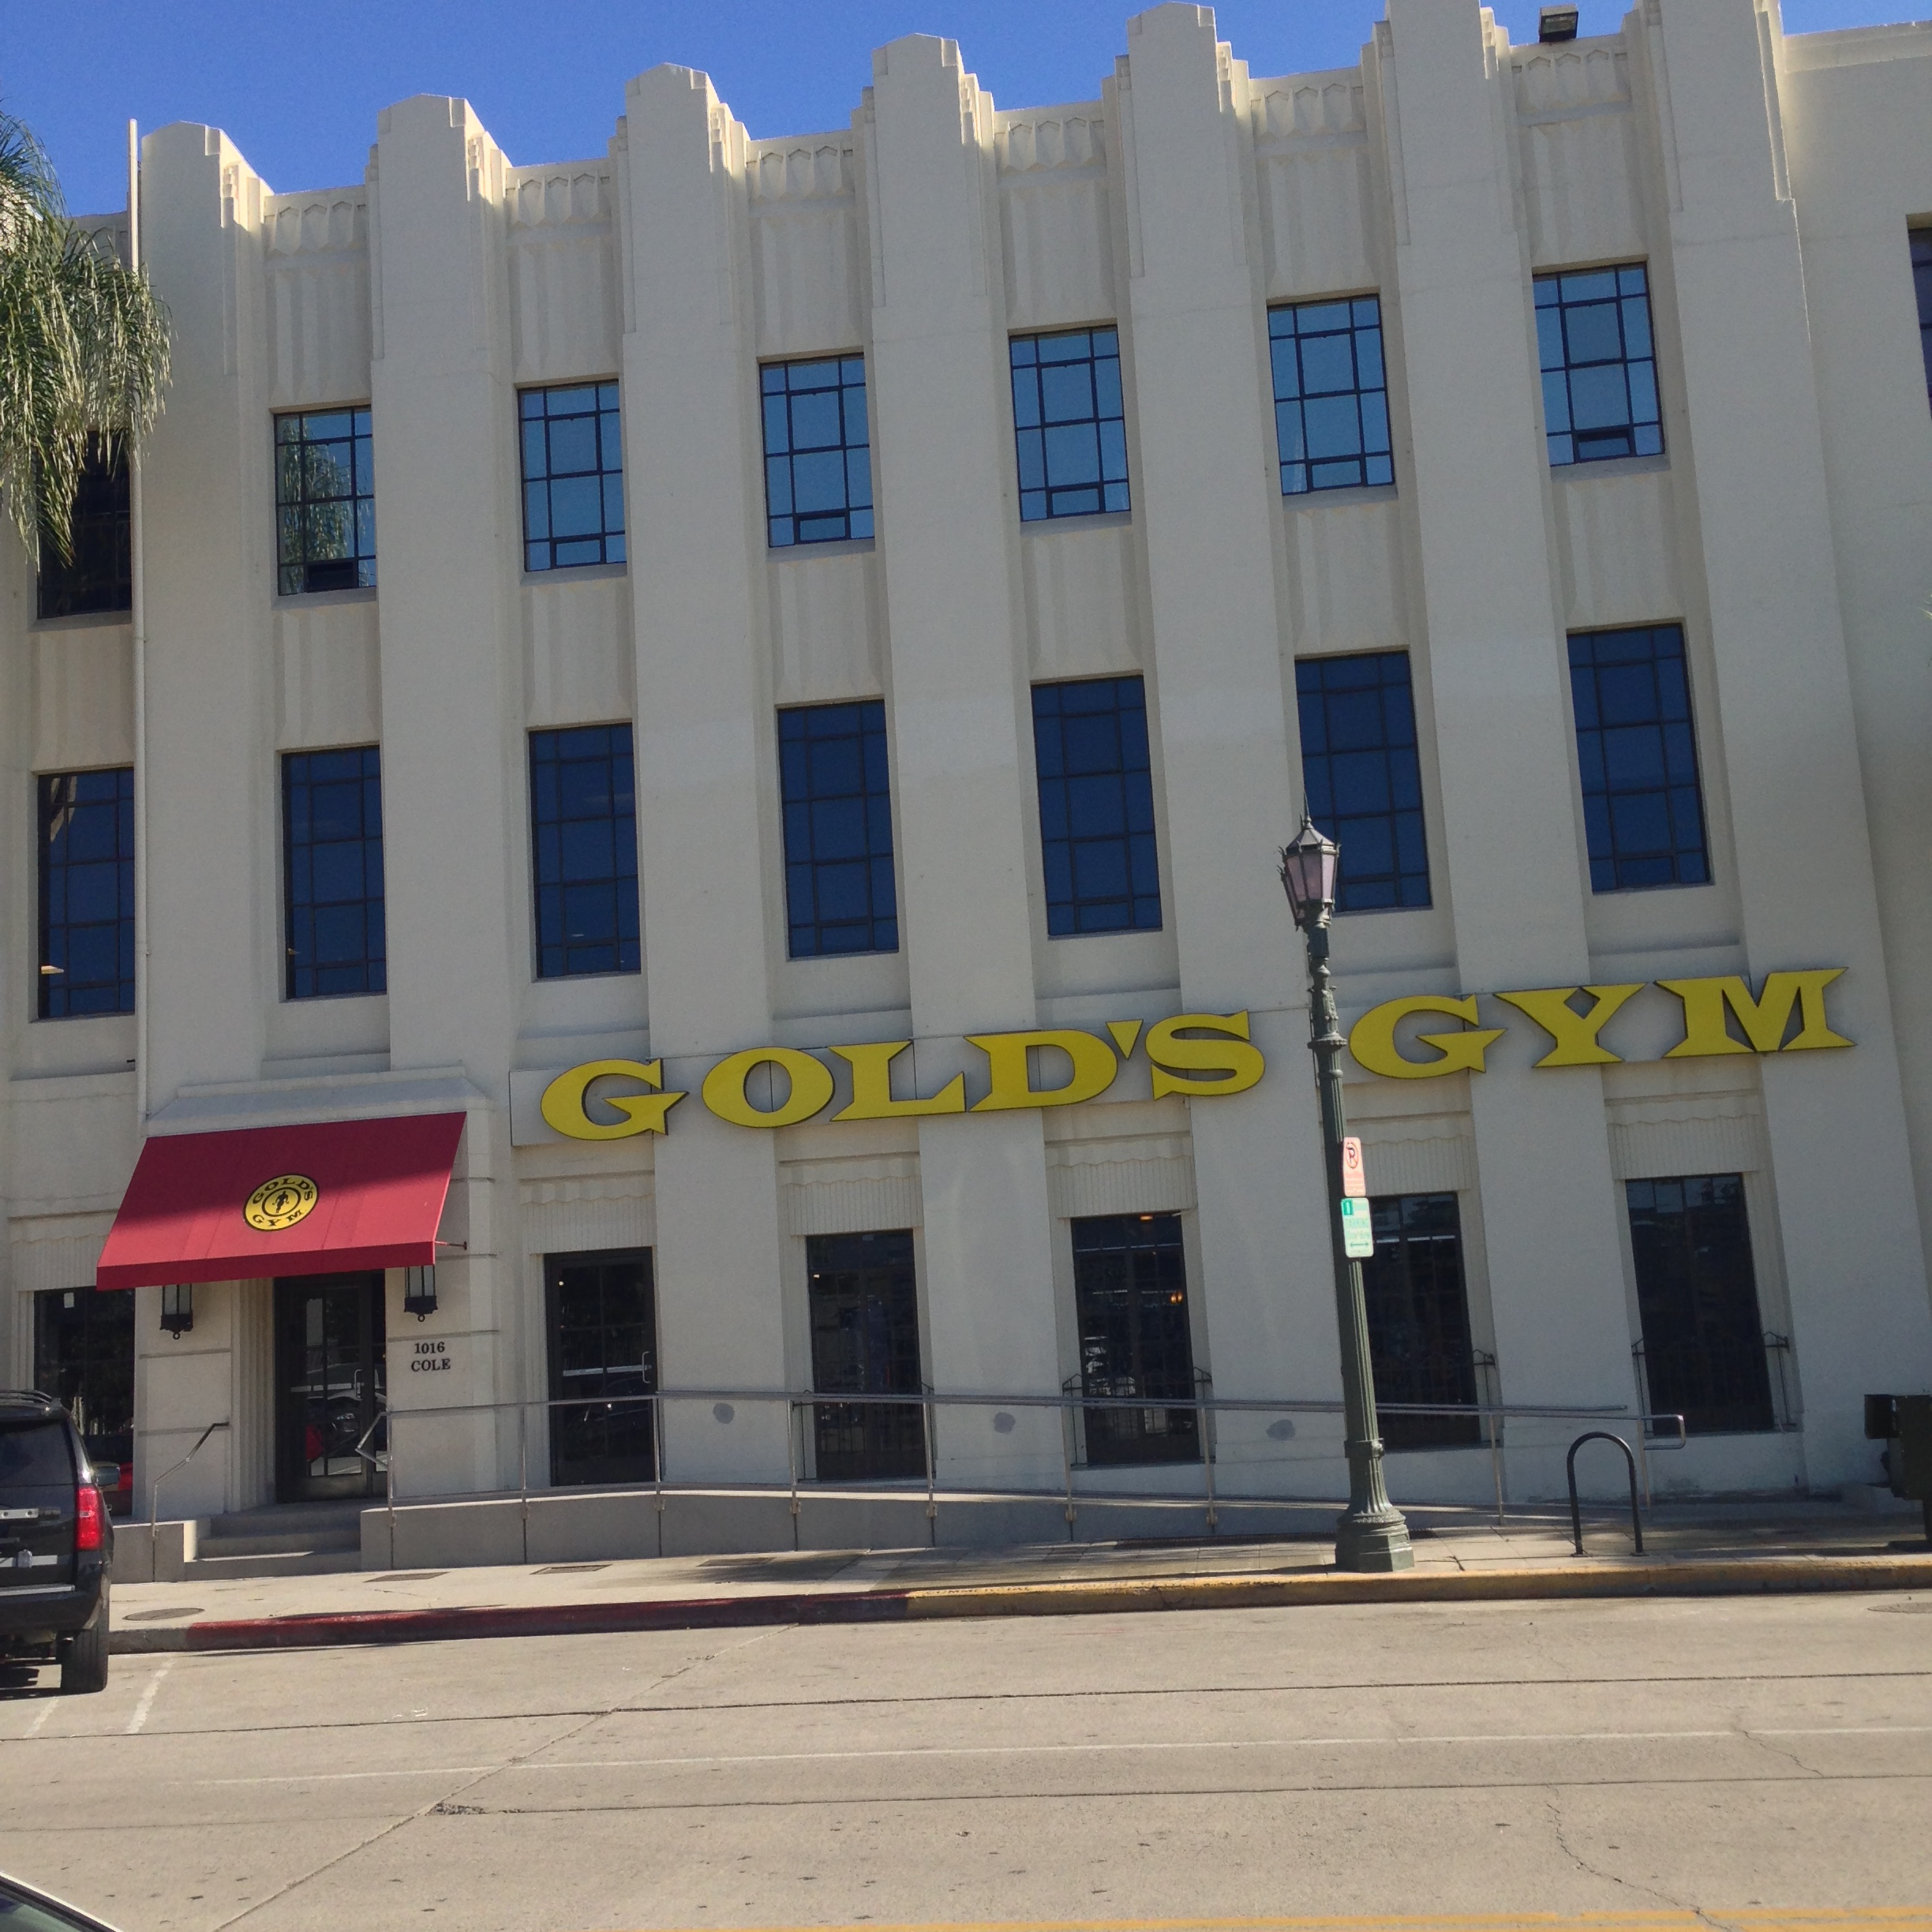 Gold's Gym – Hollywood, CA